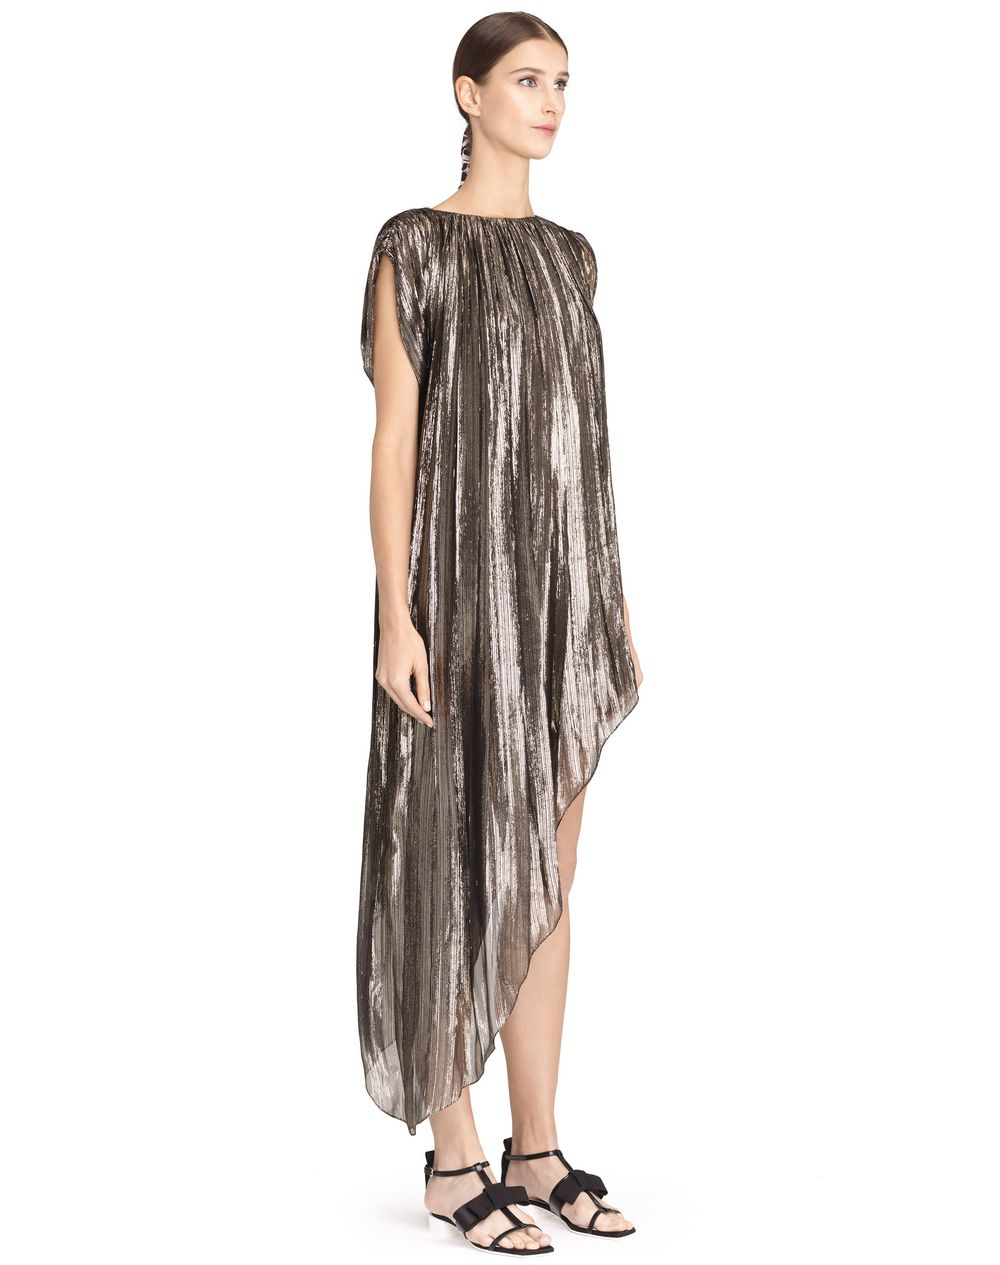 ASYMMETRICAL LAMÉ DRESS - Lanvin